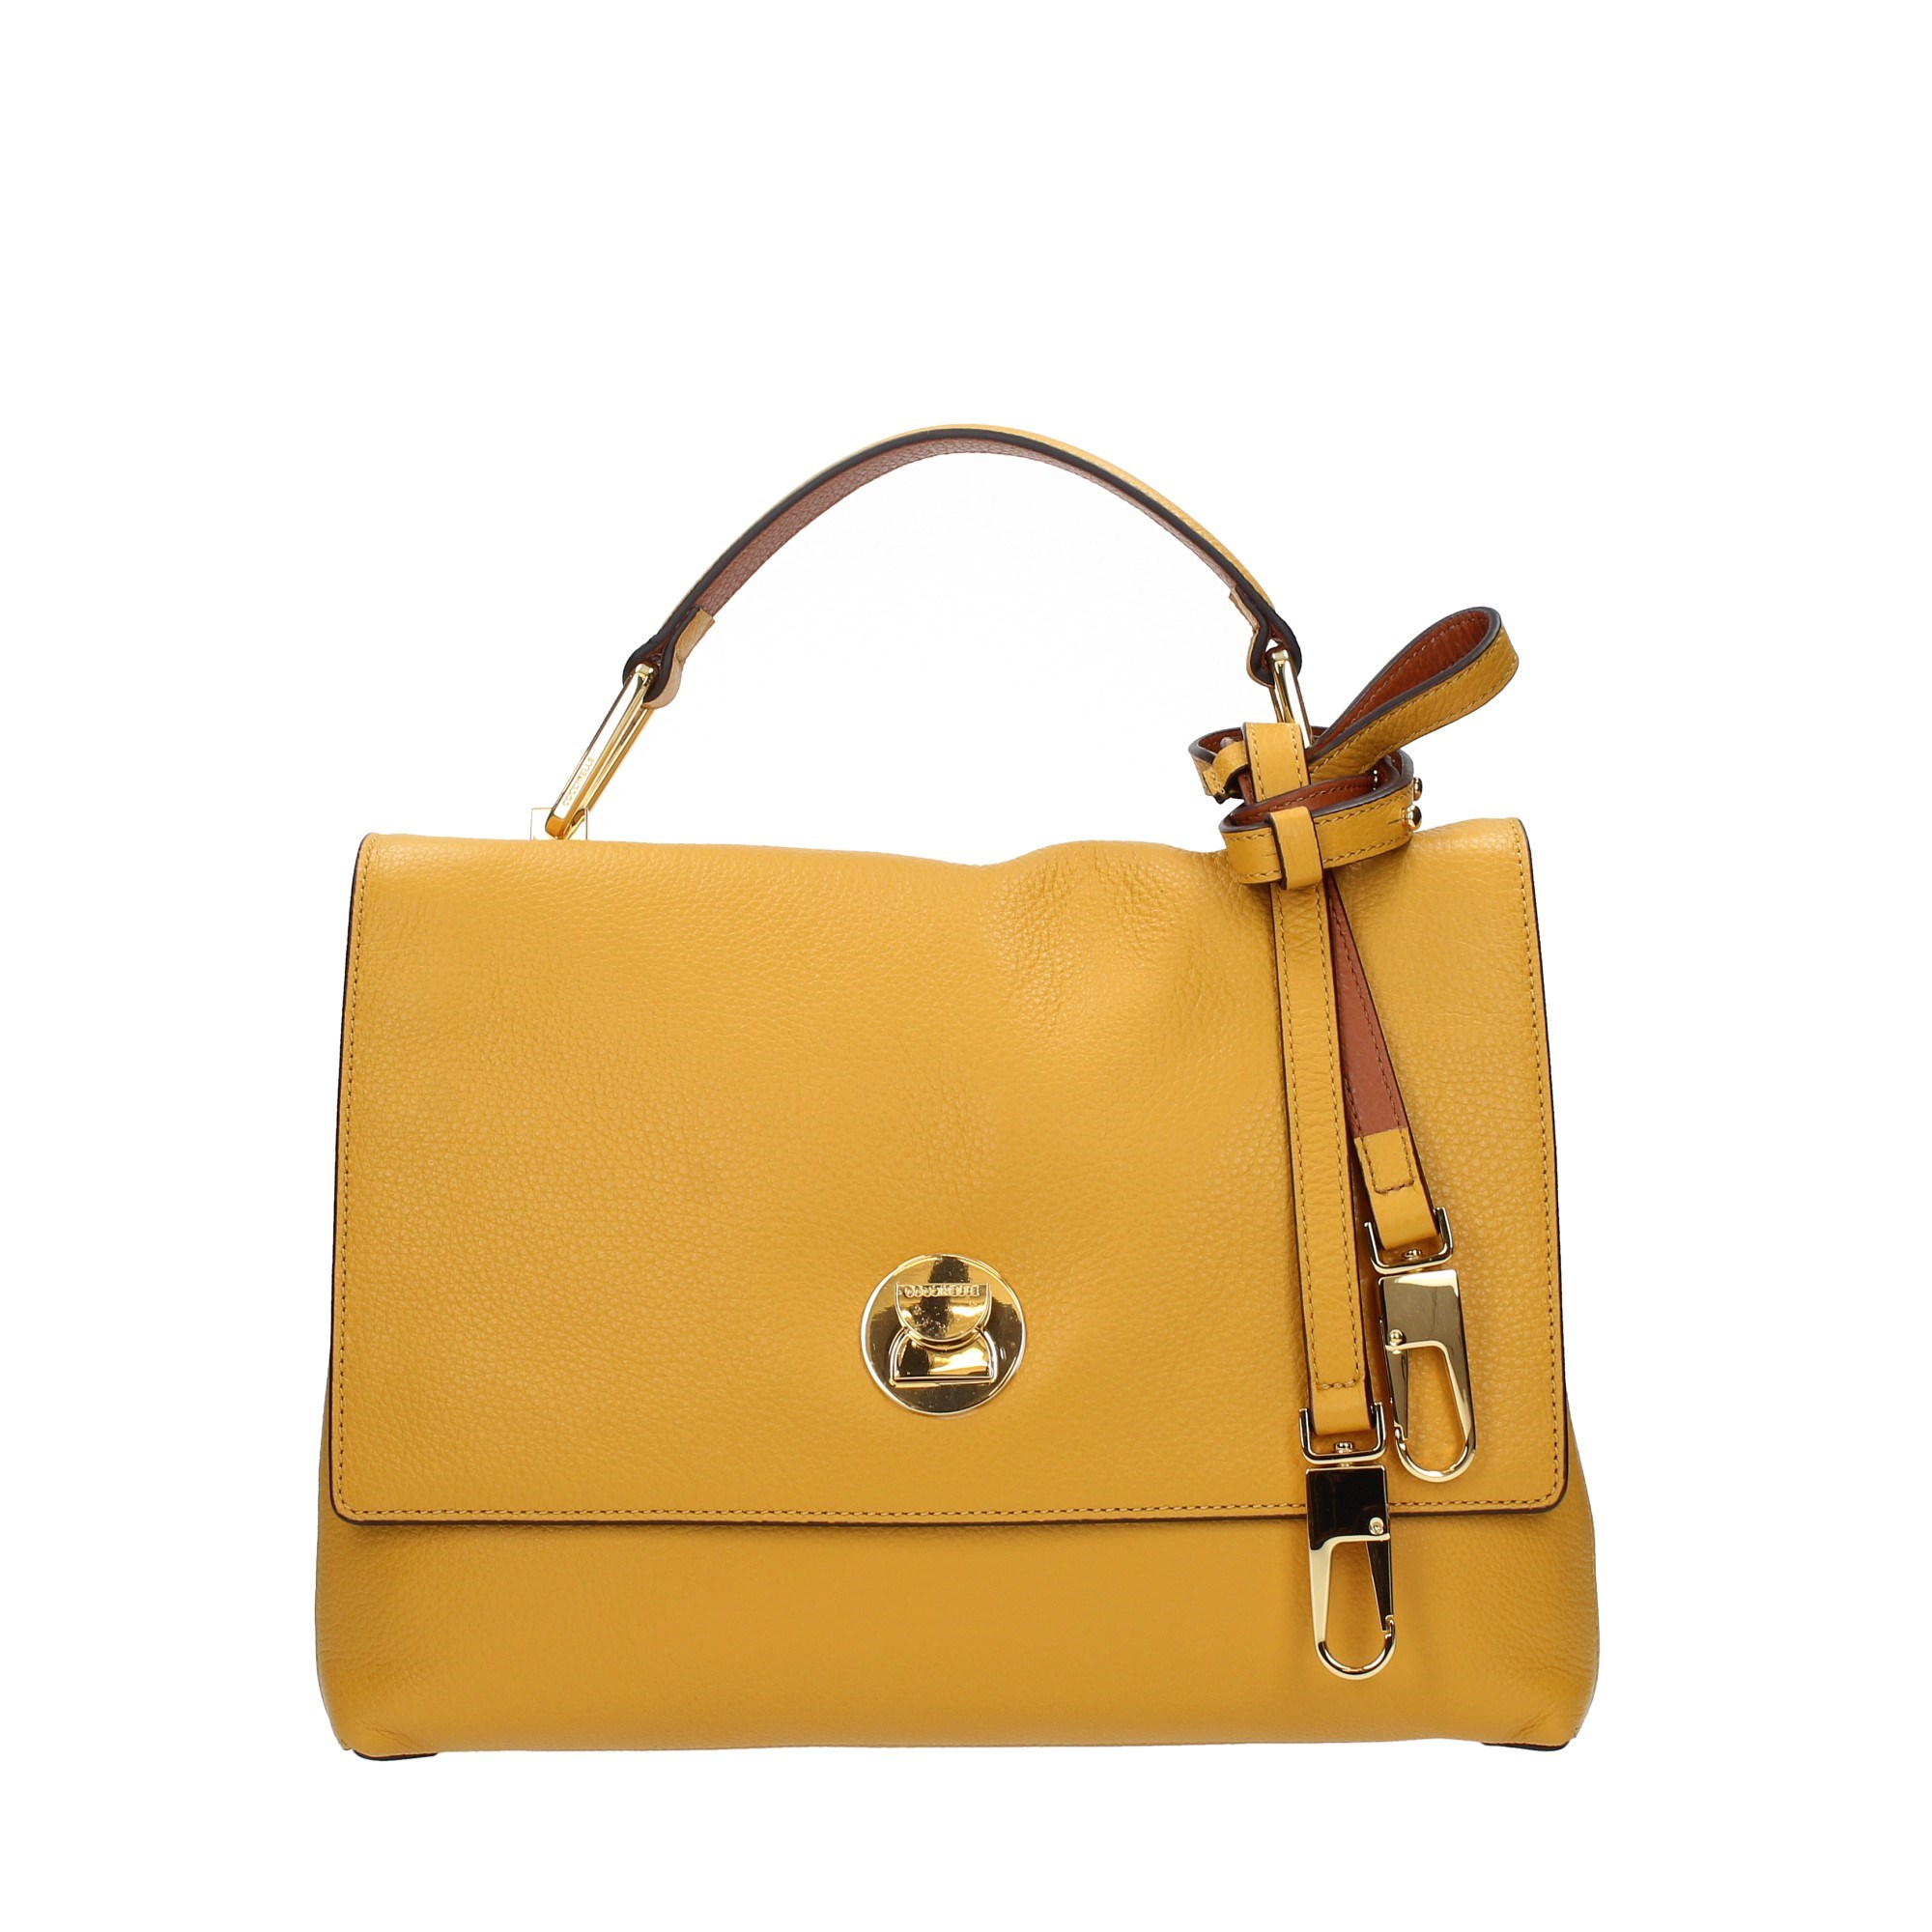 Coccinelle Accessories Women Shoulder Bags Yellow FD0 180101